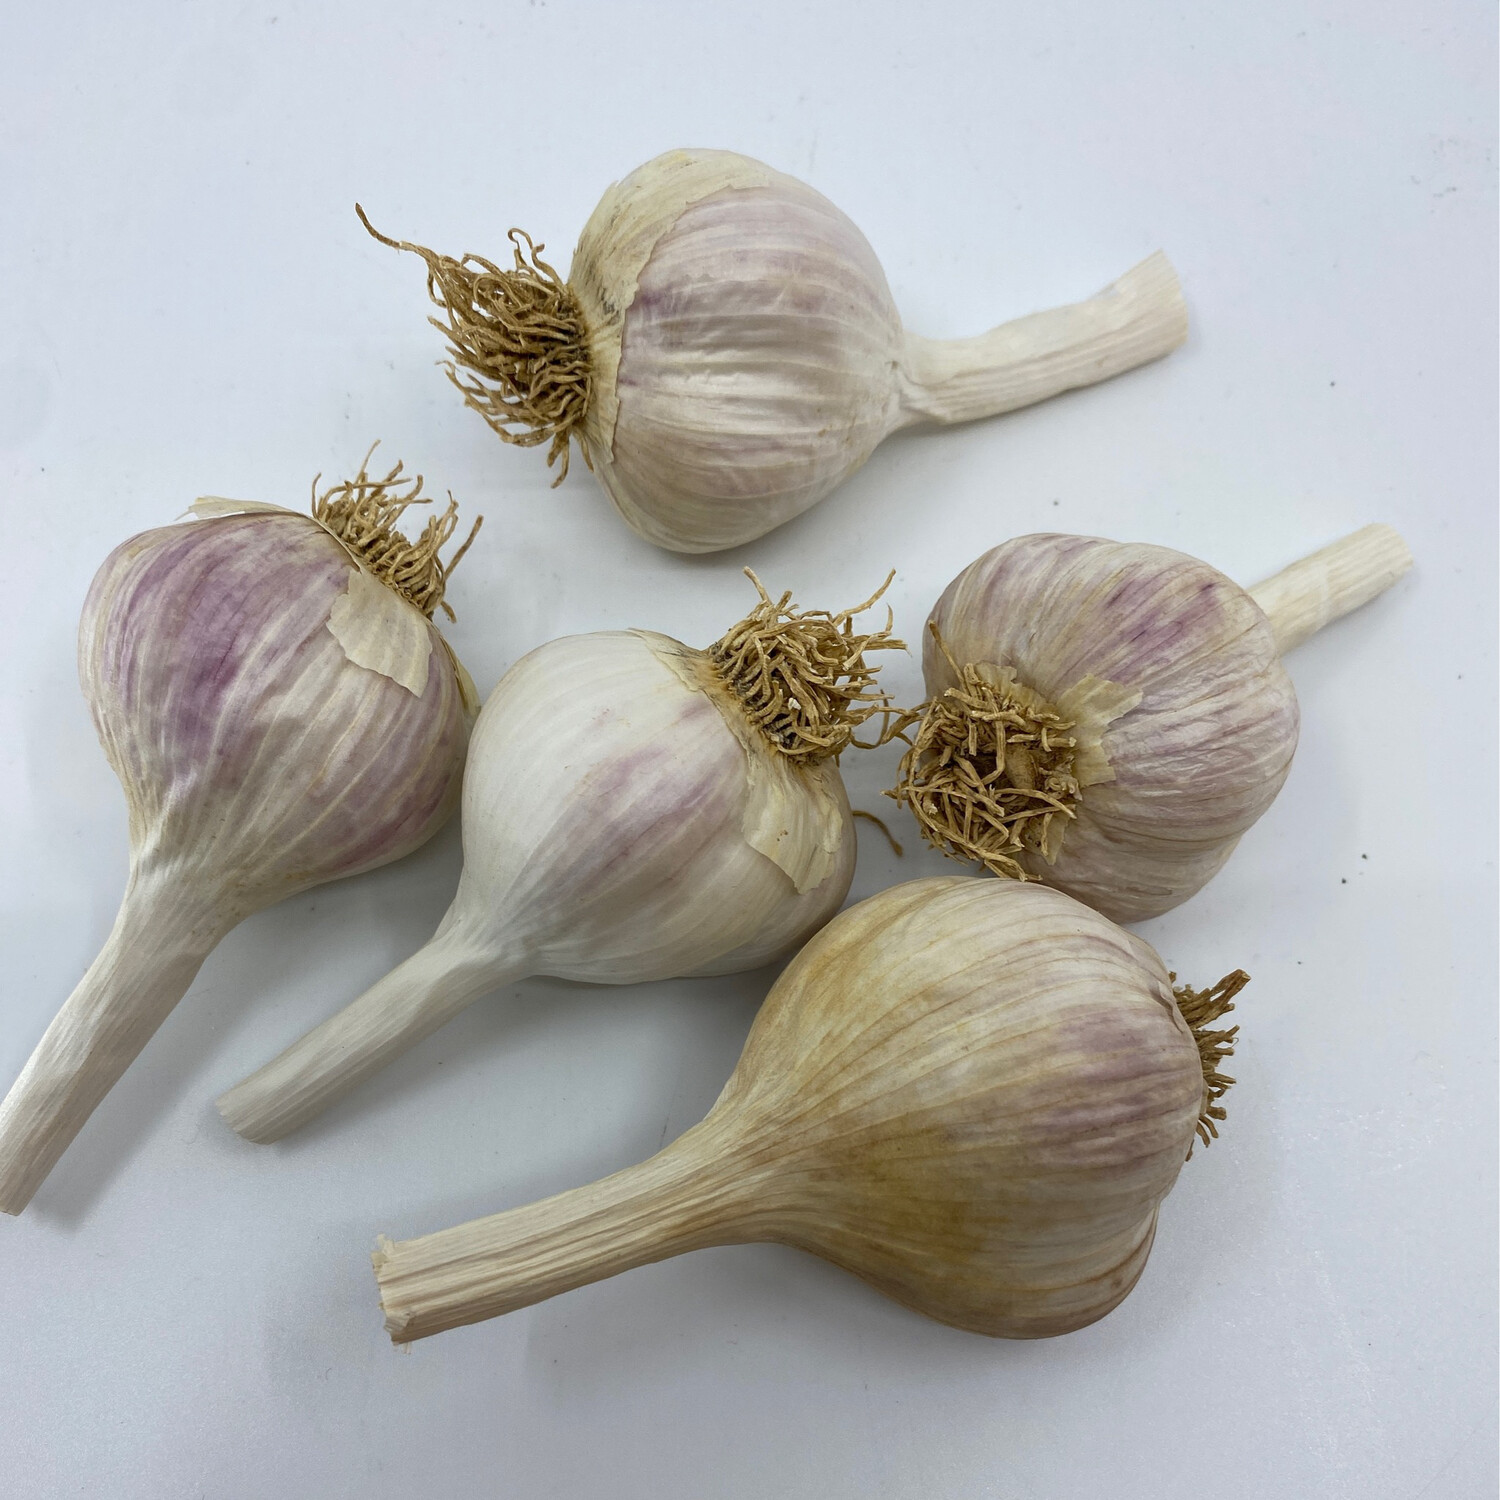 Good Work Farm Organic, not certified Hardneck Garlic (1/2 lb)